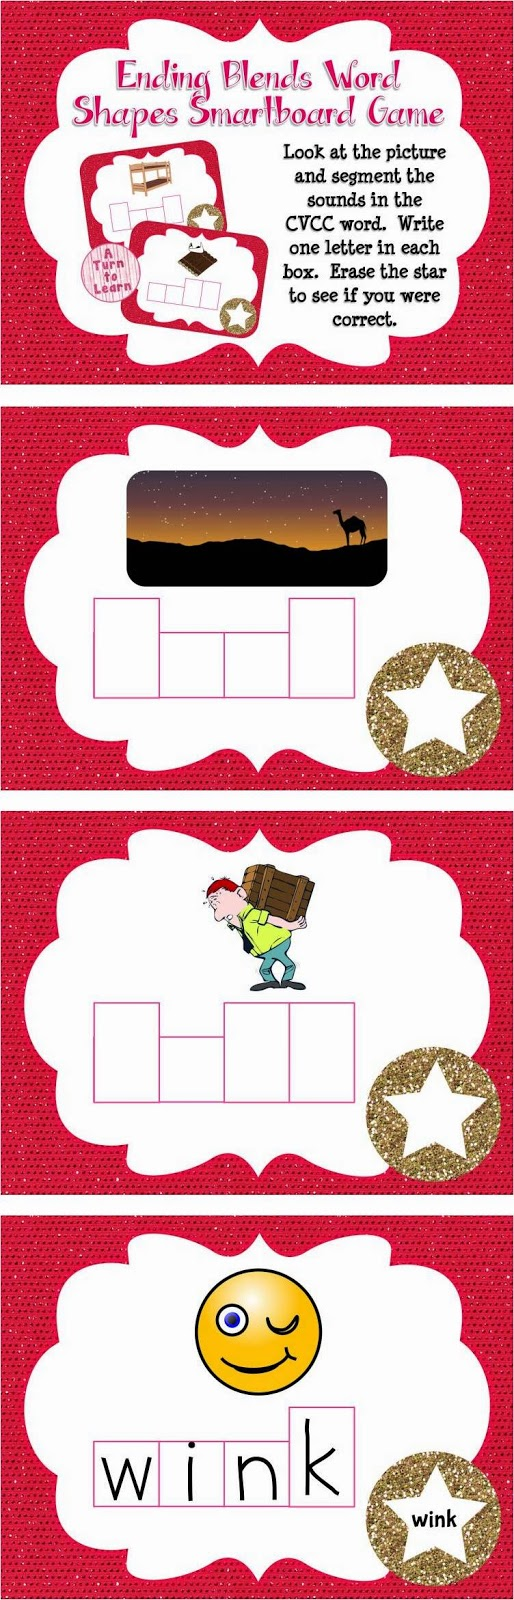 Ending Blends/CVCC Word Shapes Game for Smartboard or Promethean Board!